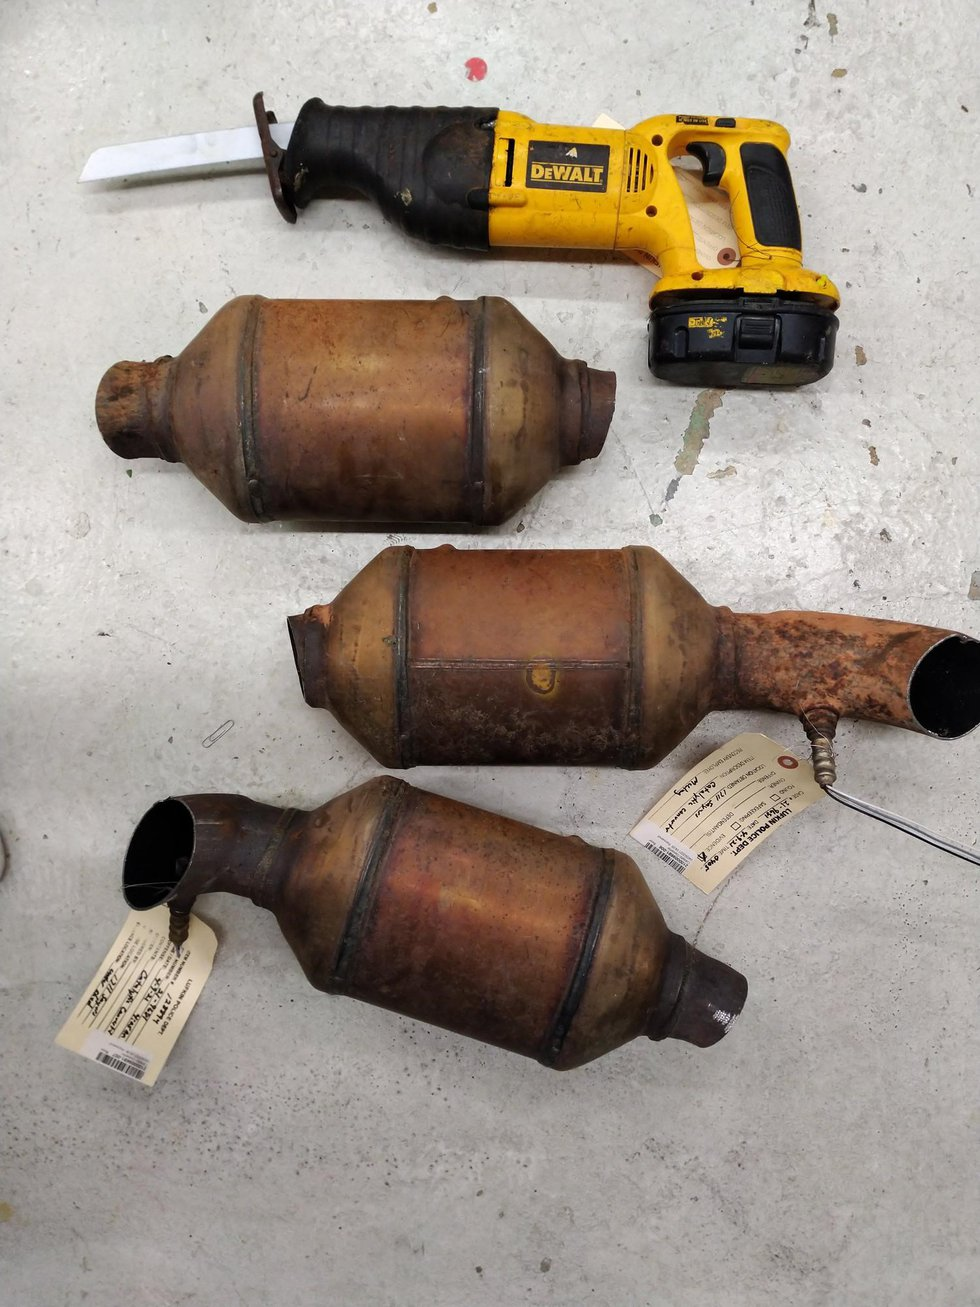 Catalytic converters and sawzall police say Brown had in his possession.